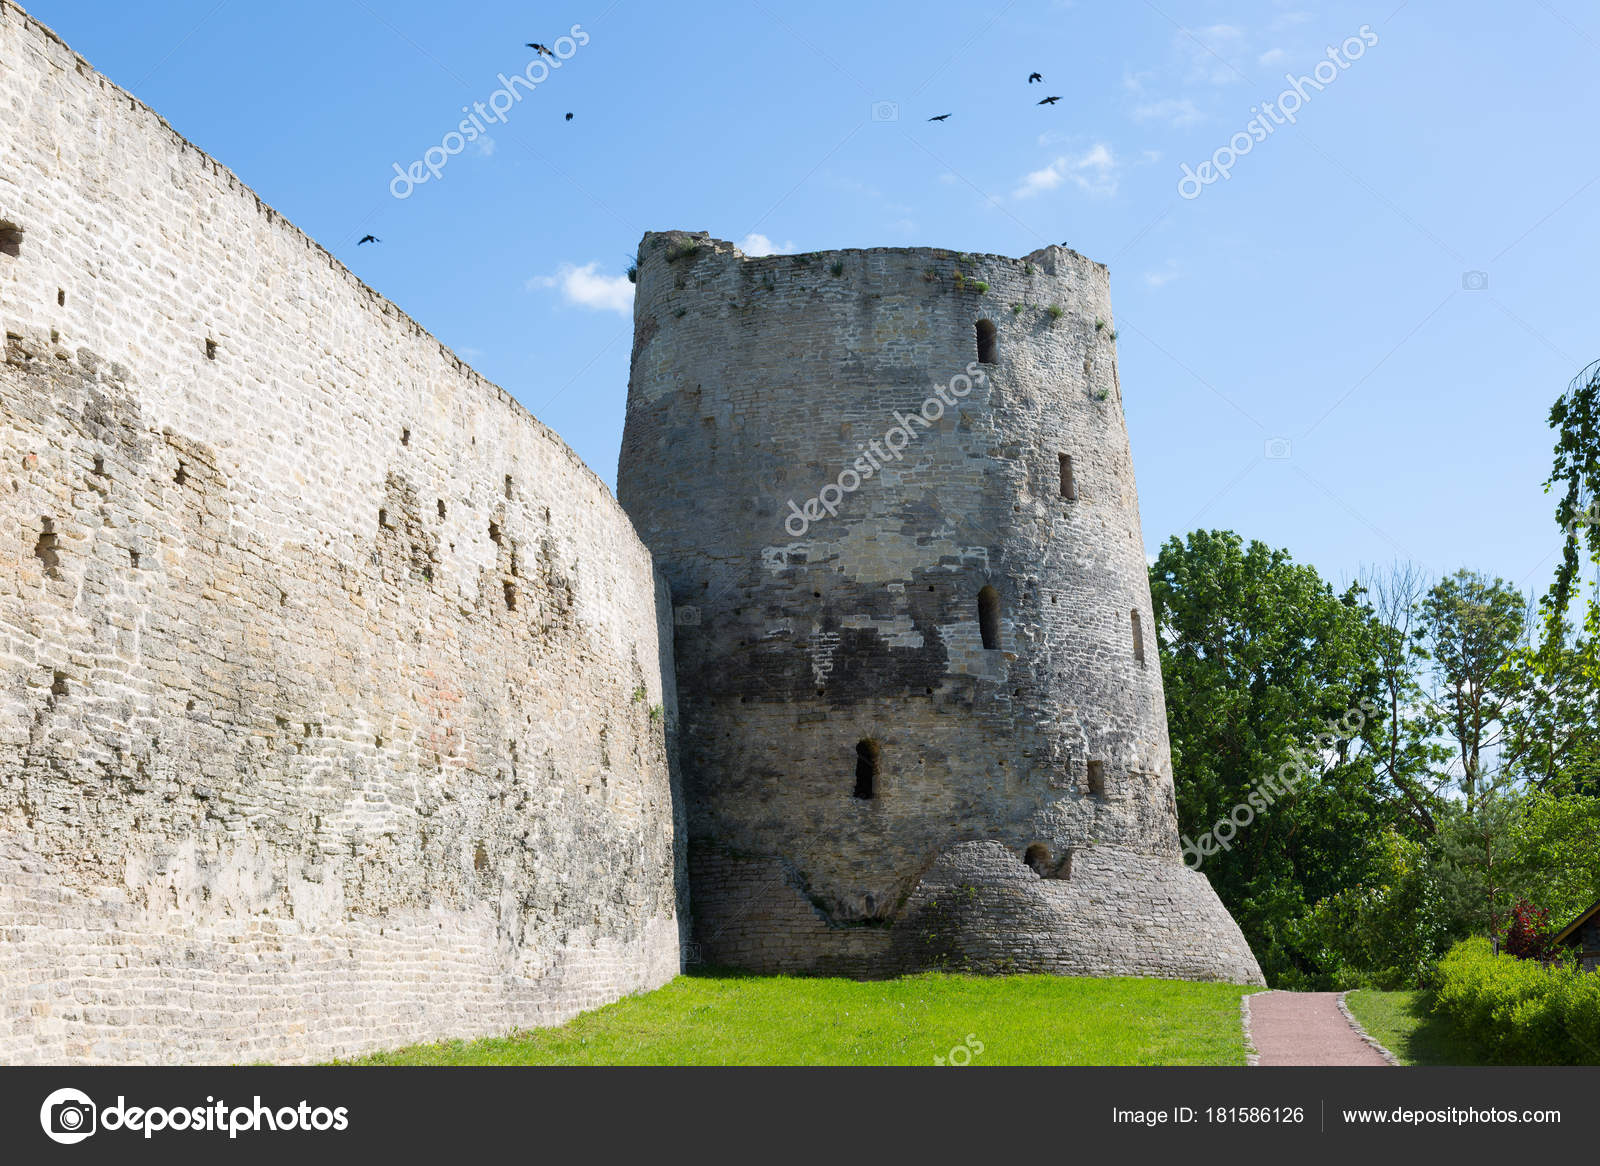 Izborsk fortress, Pskov region: photo and description, history of sights, how to get 8